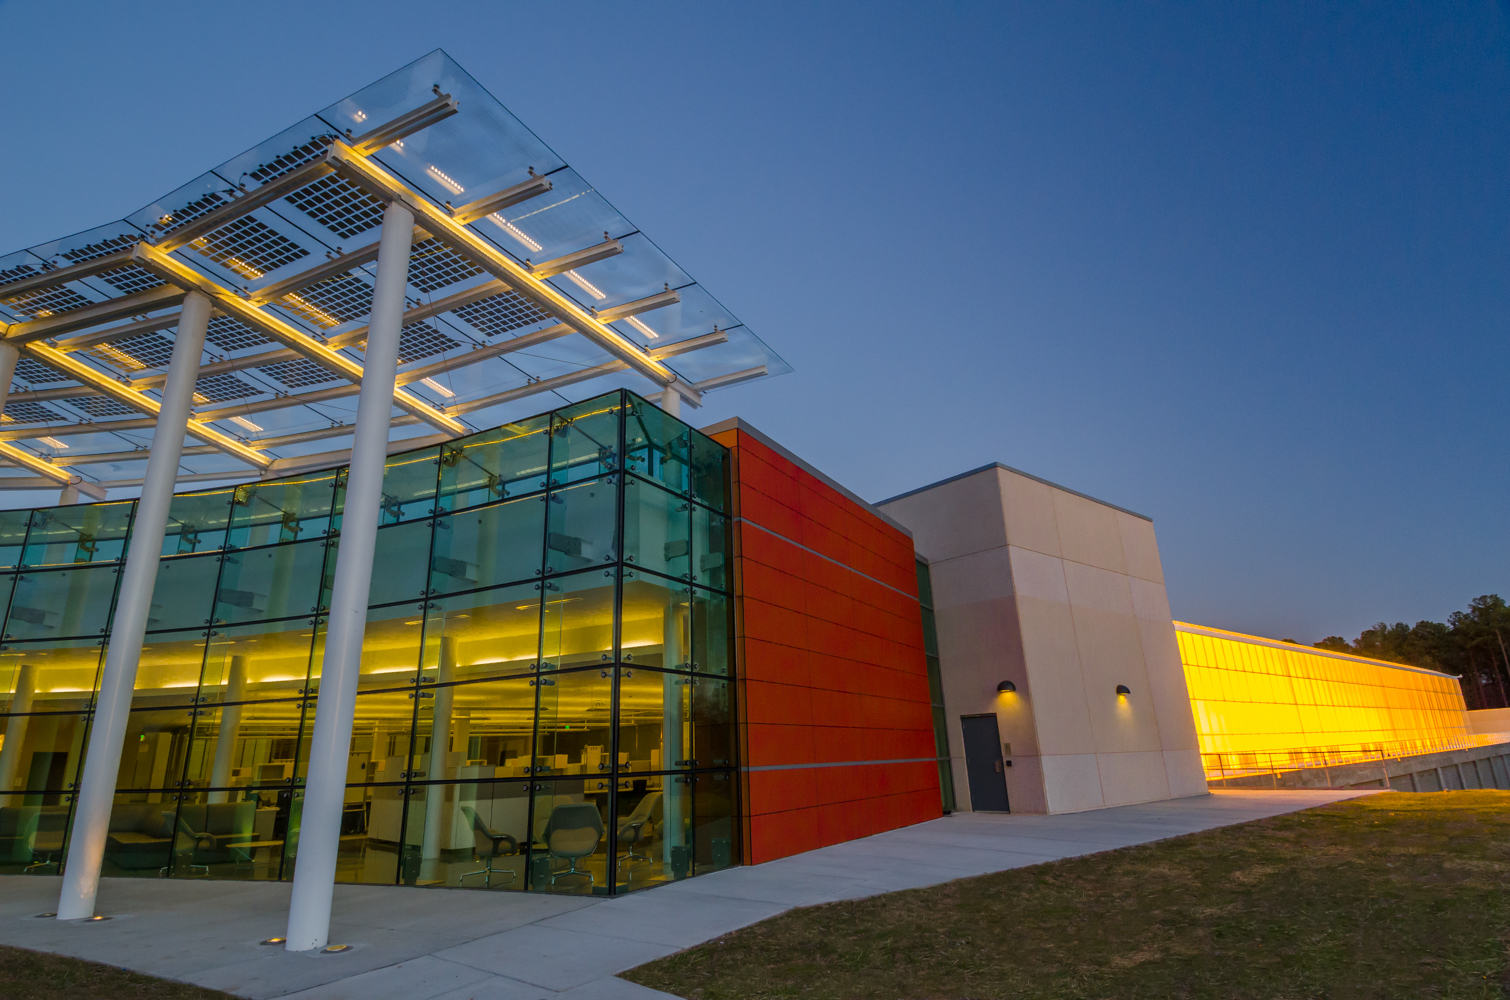 Solar panels on the glass portico of this crop science facility help power the enclosed research and greenhouse spaces.